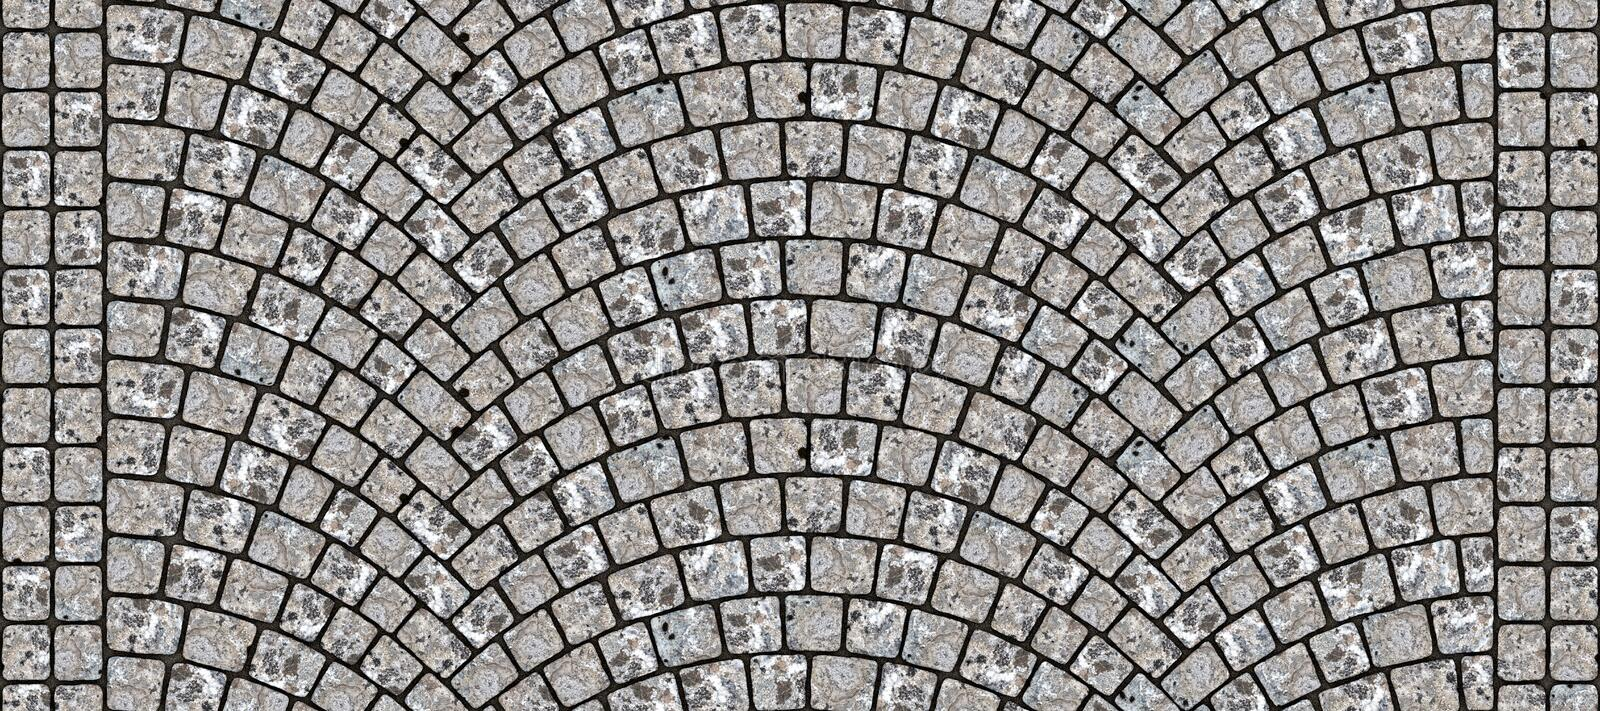 Road curved cobblestone texture 099. Cobblestone arched pavement road with edge courses at the sidewalk. Seamless tileable repeating 3D rendering texture royalty free illustration